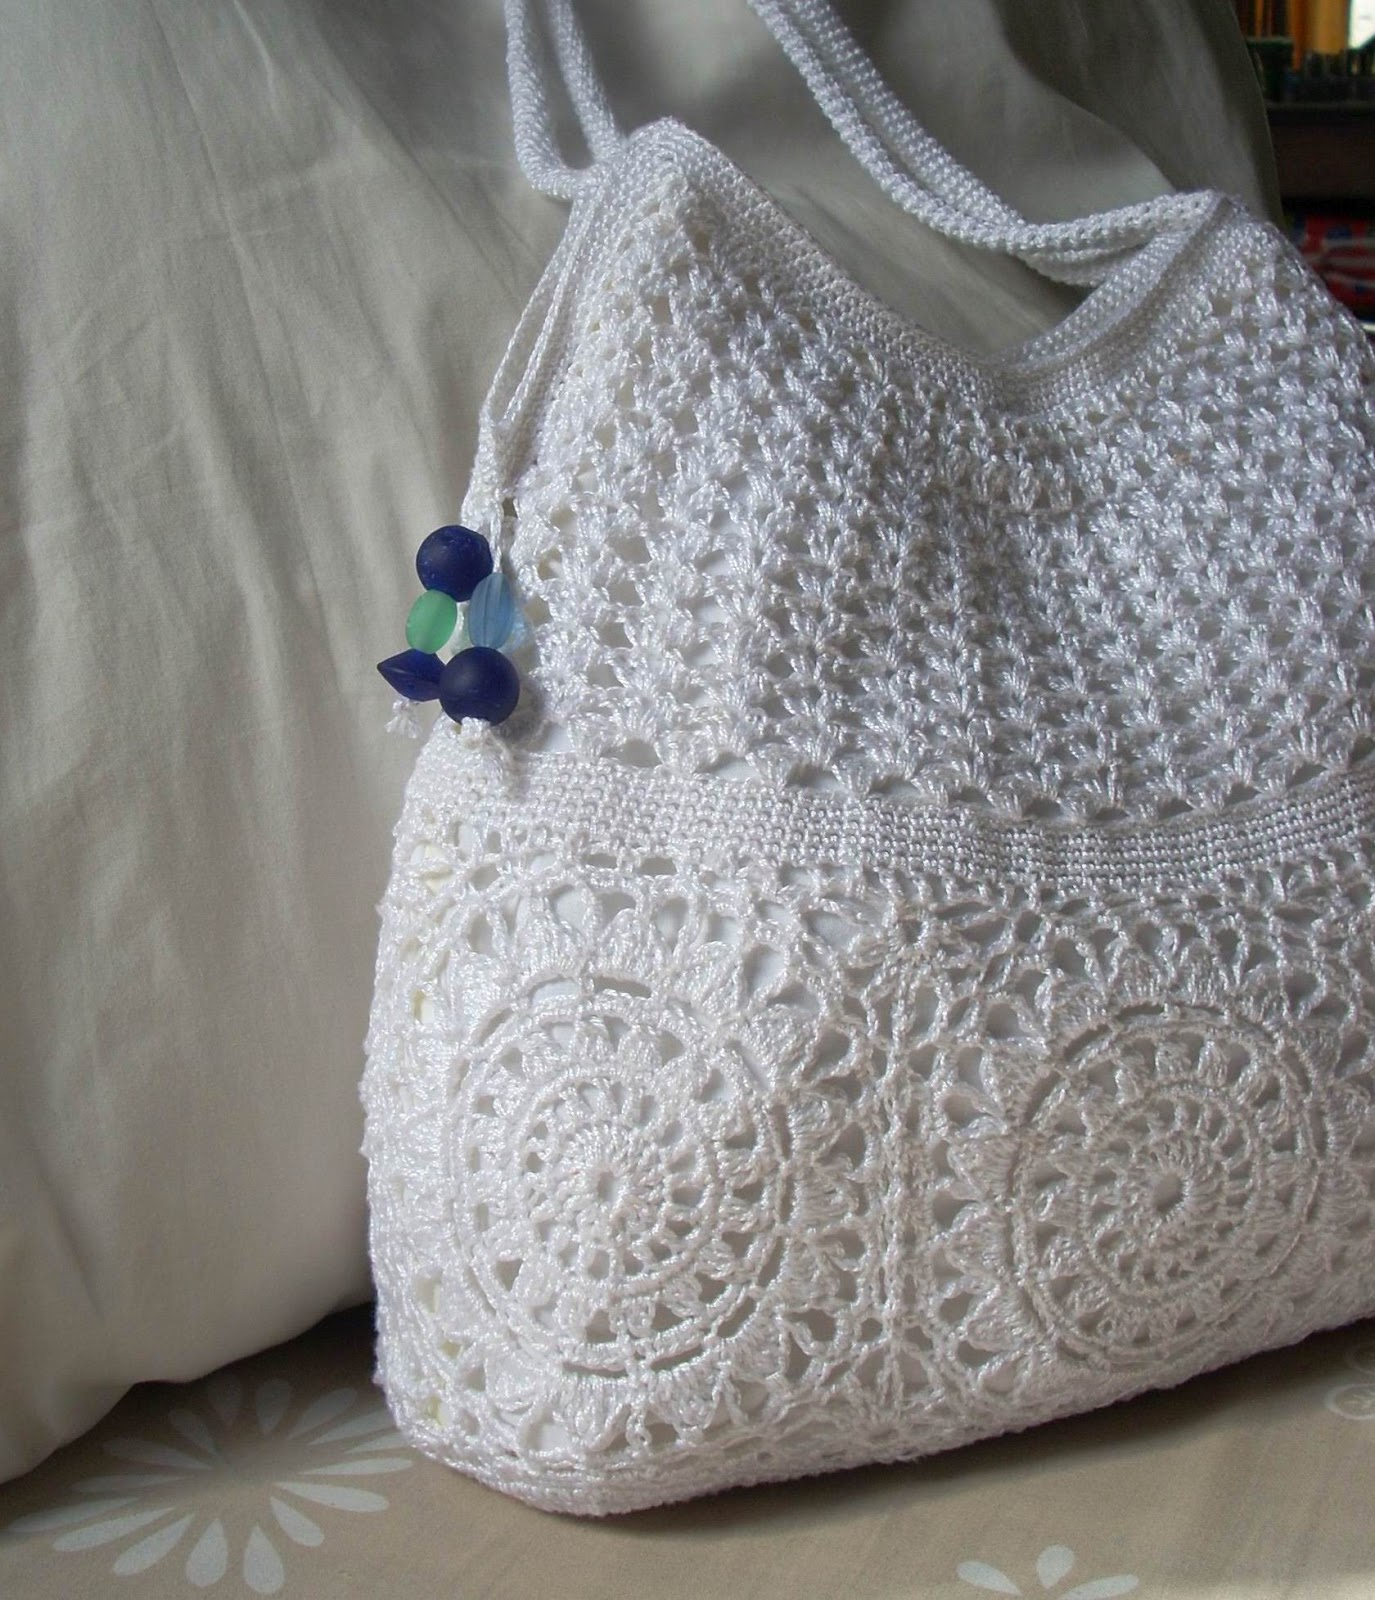 Crochet Bags On Pinterest Crochet Bags Crochet Handbags And Crochet ...